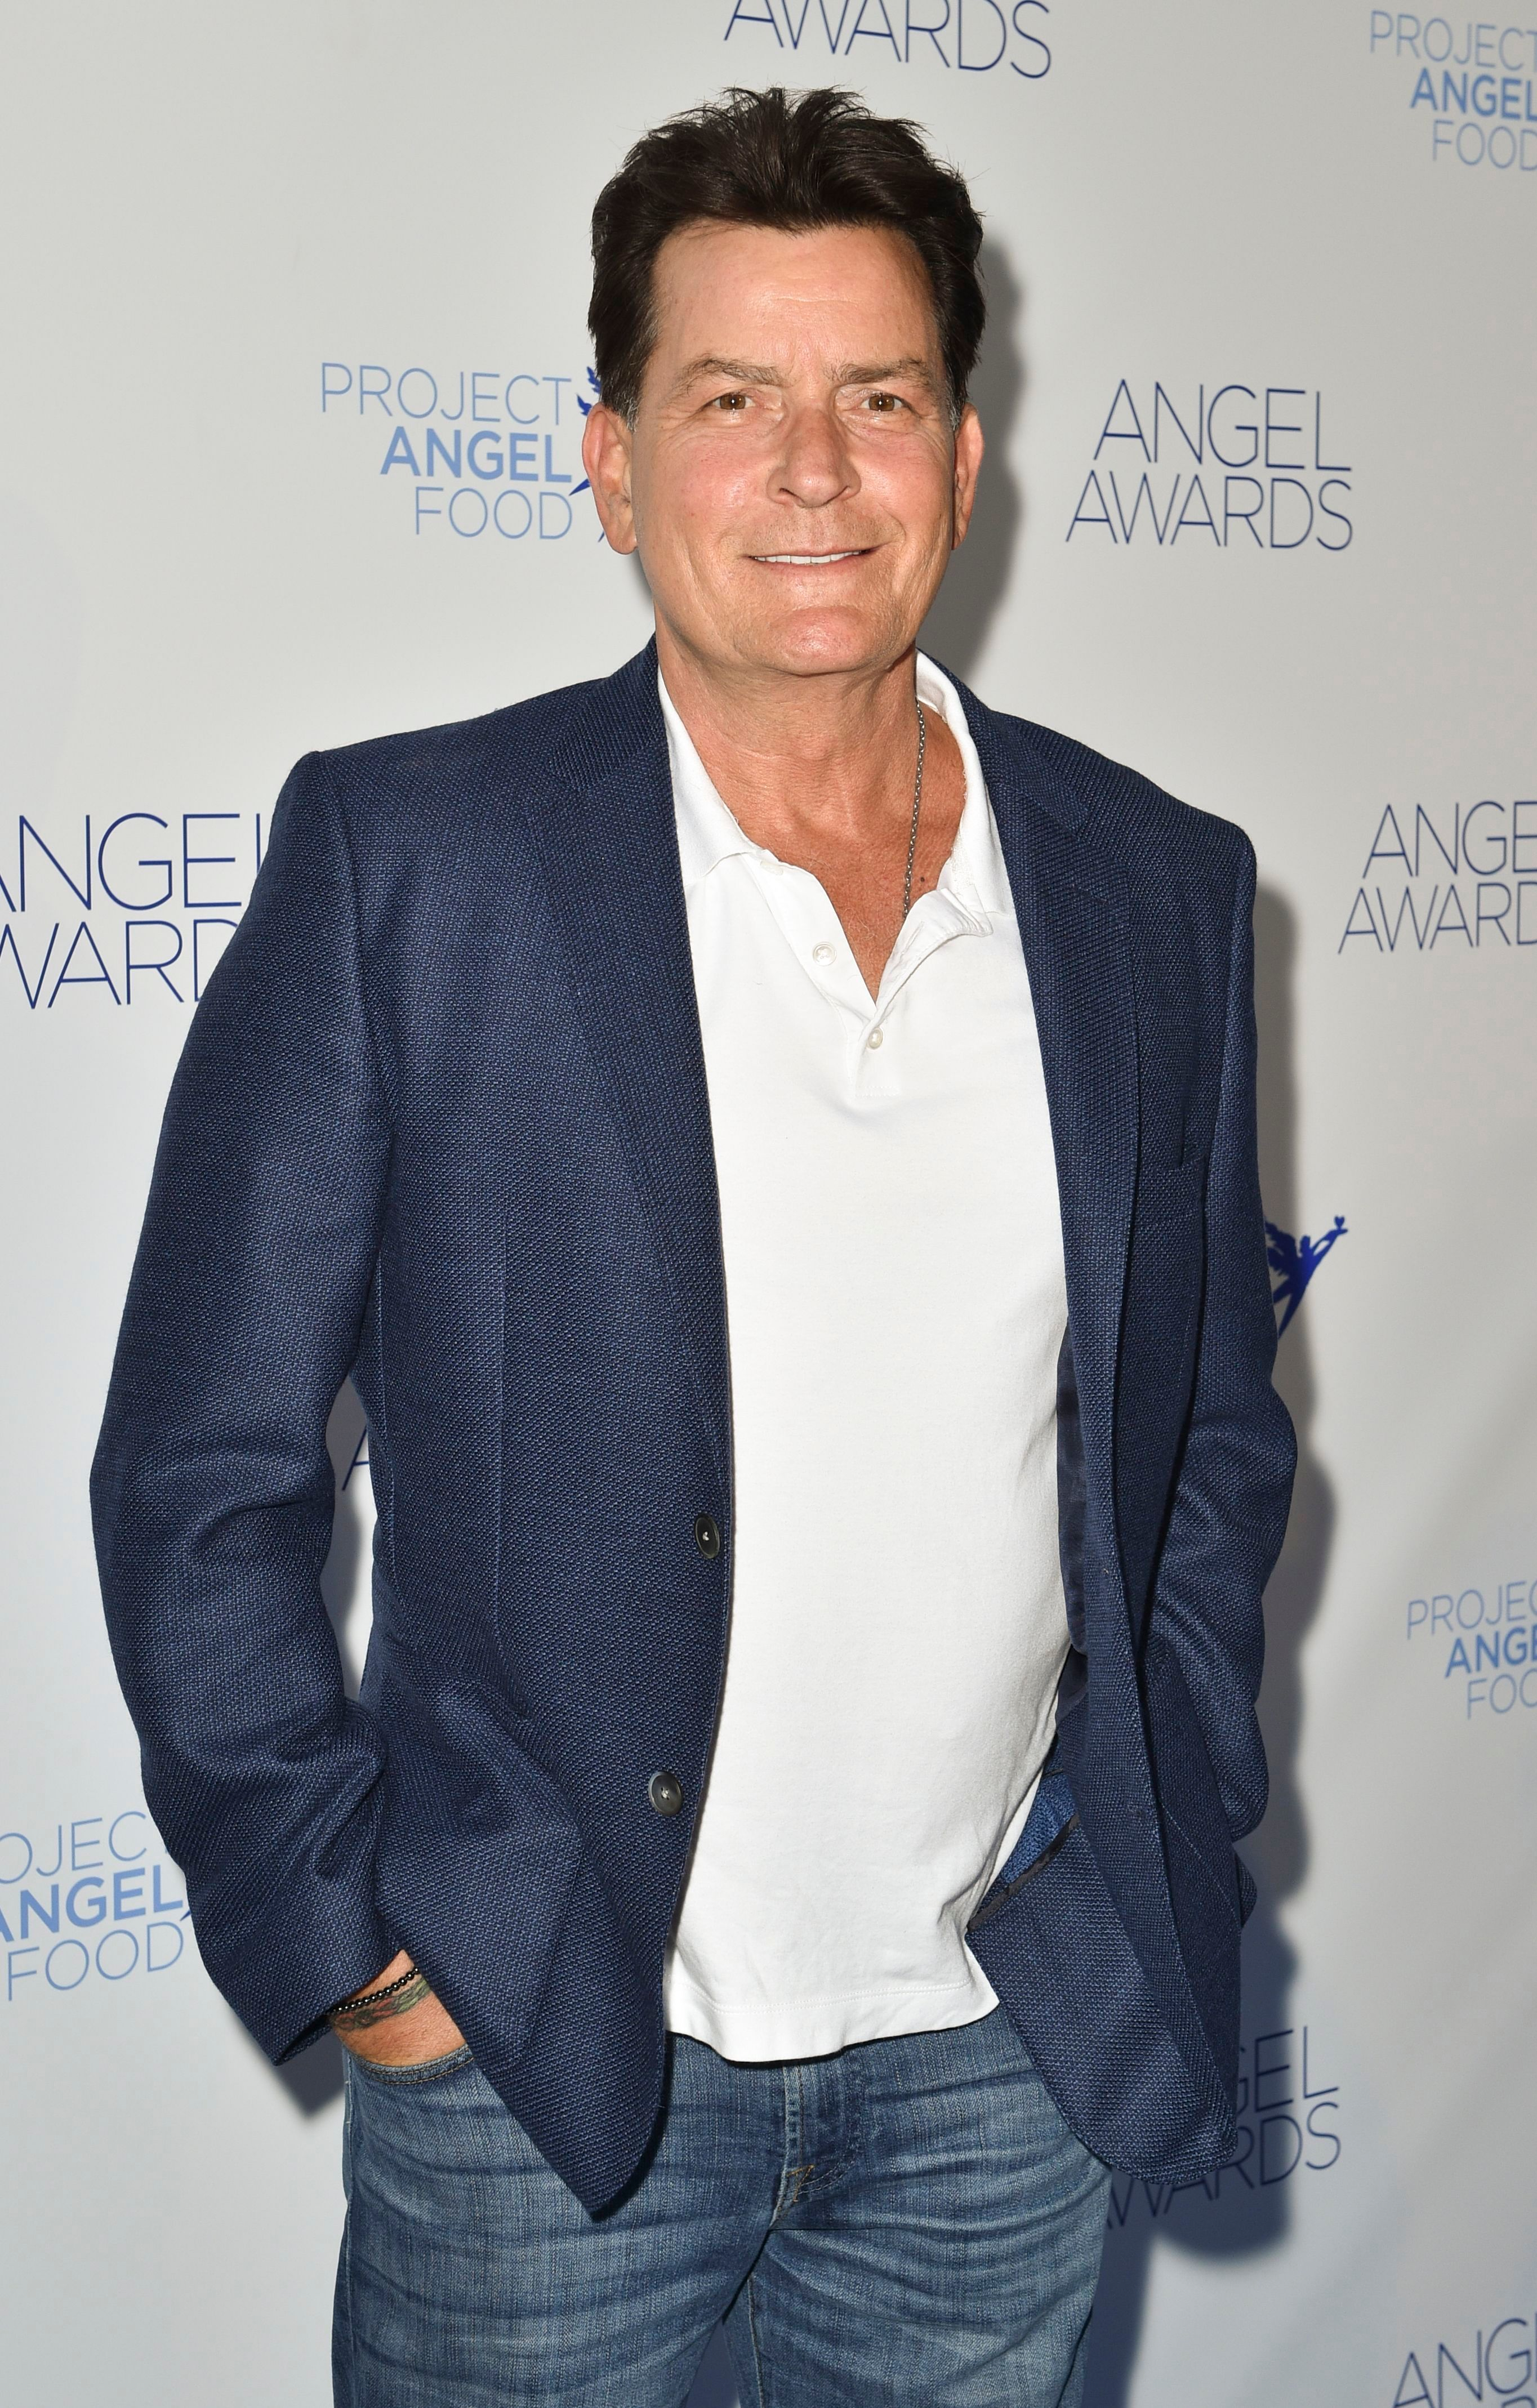 Charlie Sheen attends the Project Angel Food honoring Debra Messing in Los Angeles on Aug. 18, 2018.